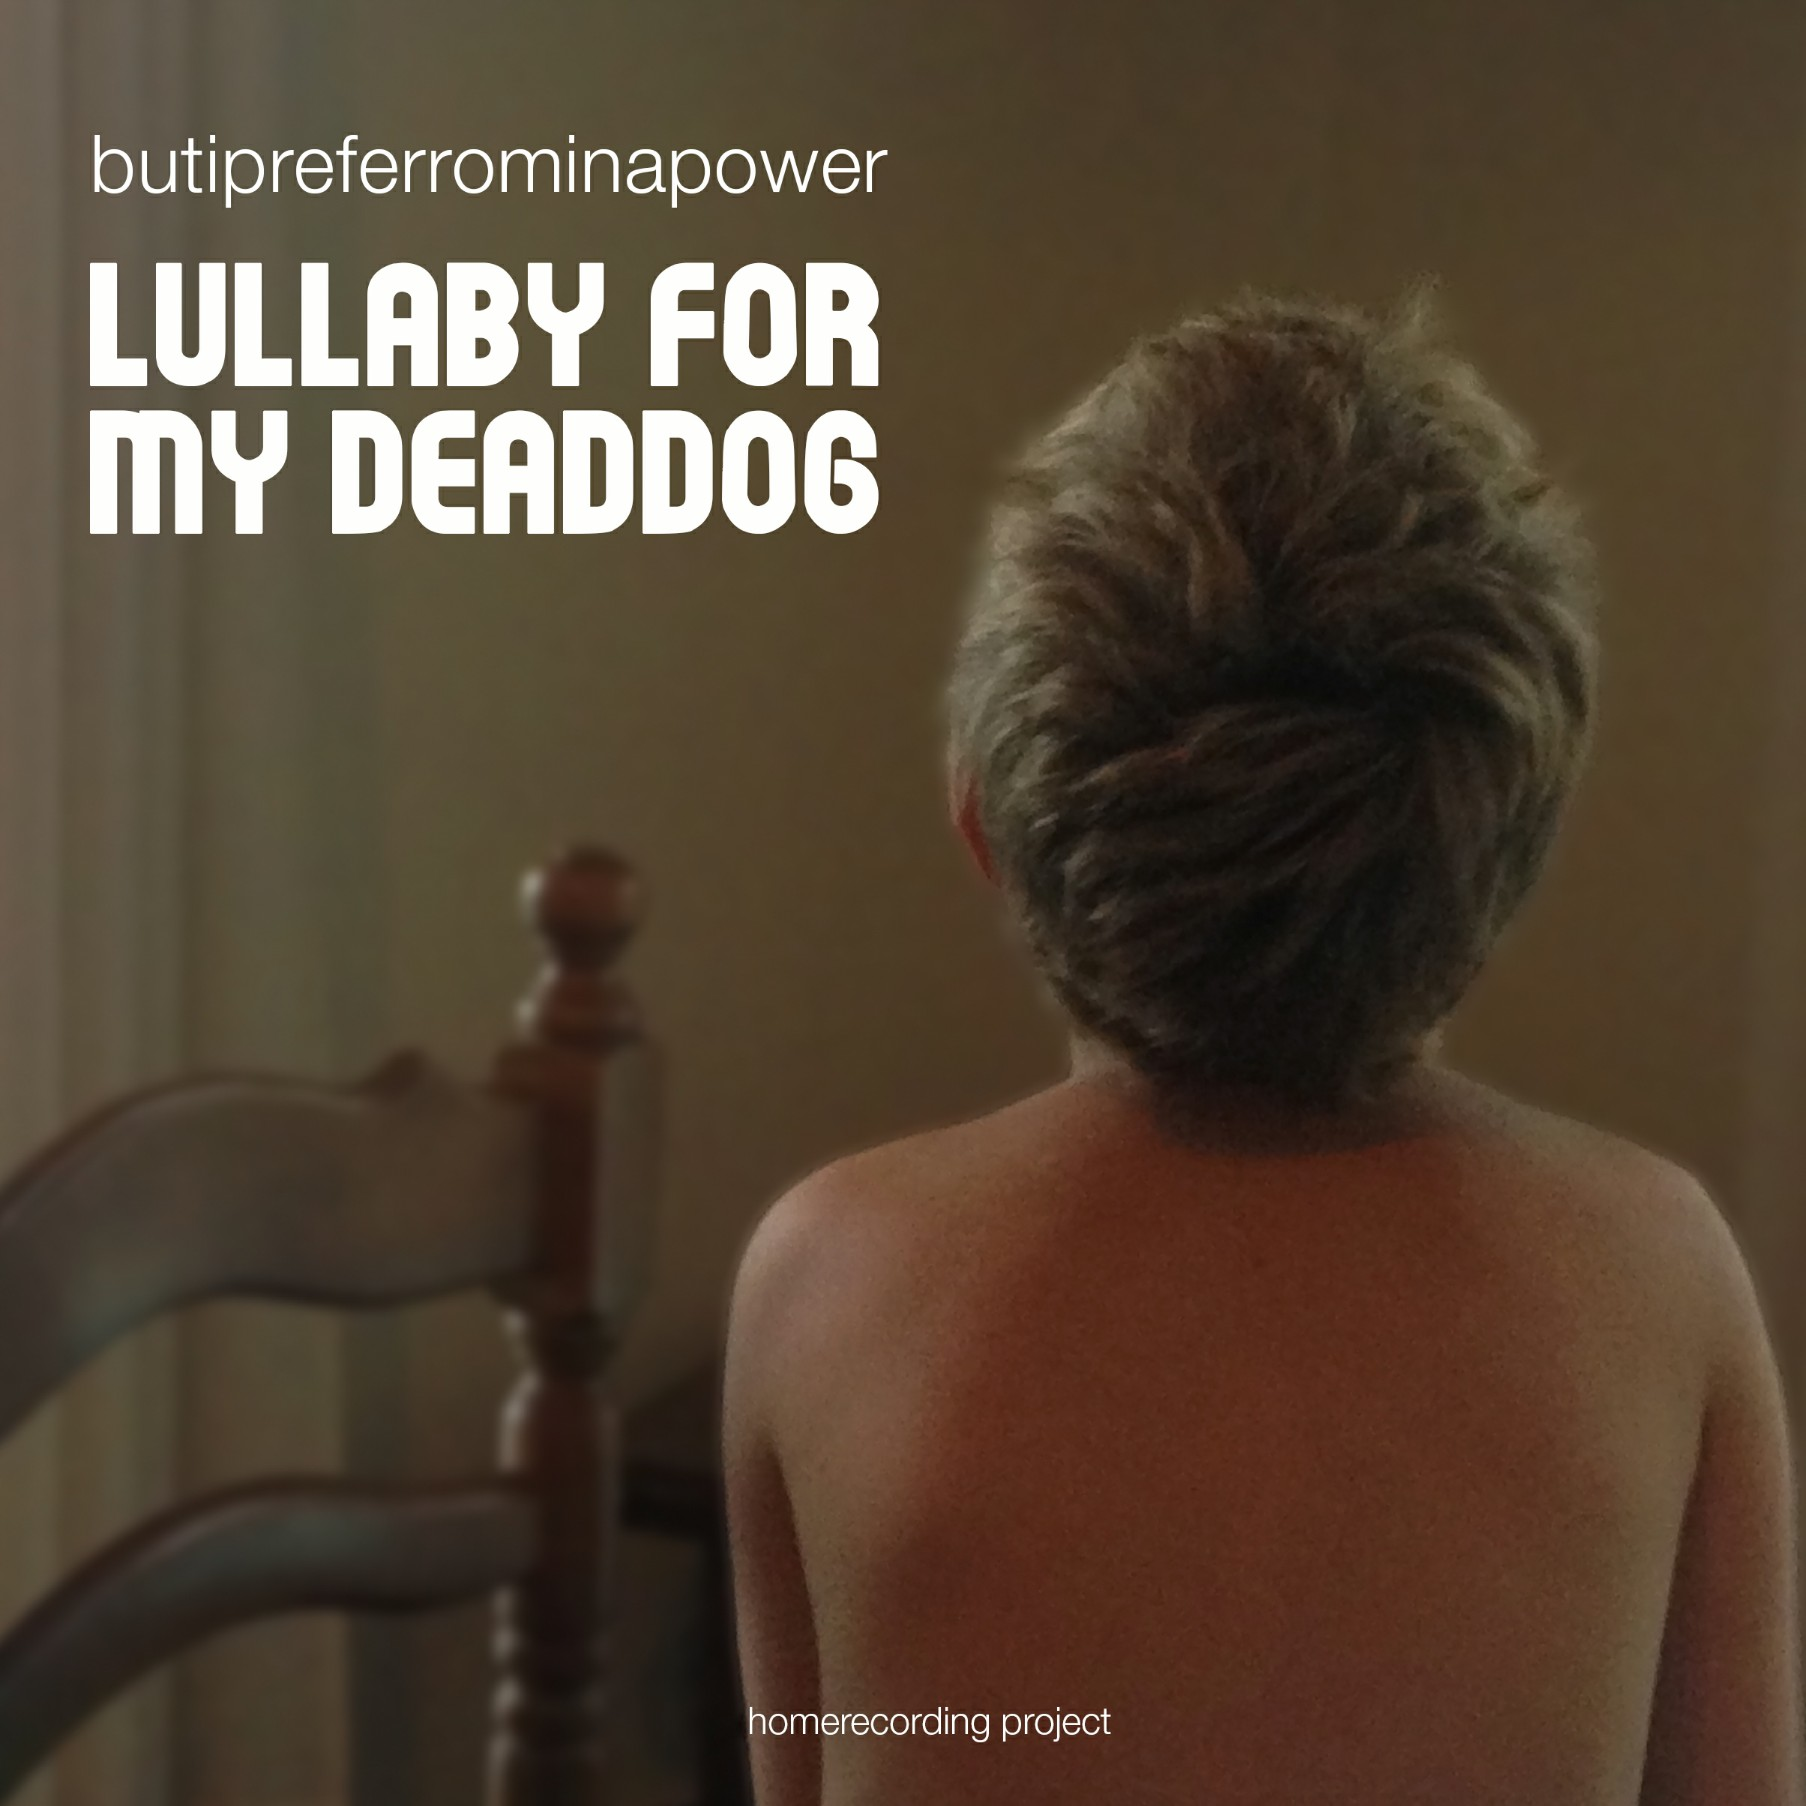 IYE19 - BUTIPREFERROMINAPOWER -  LULLABY FOR MY DEADDOG 2